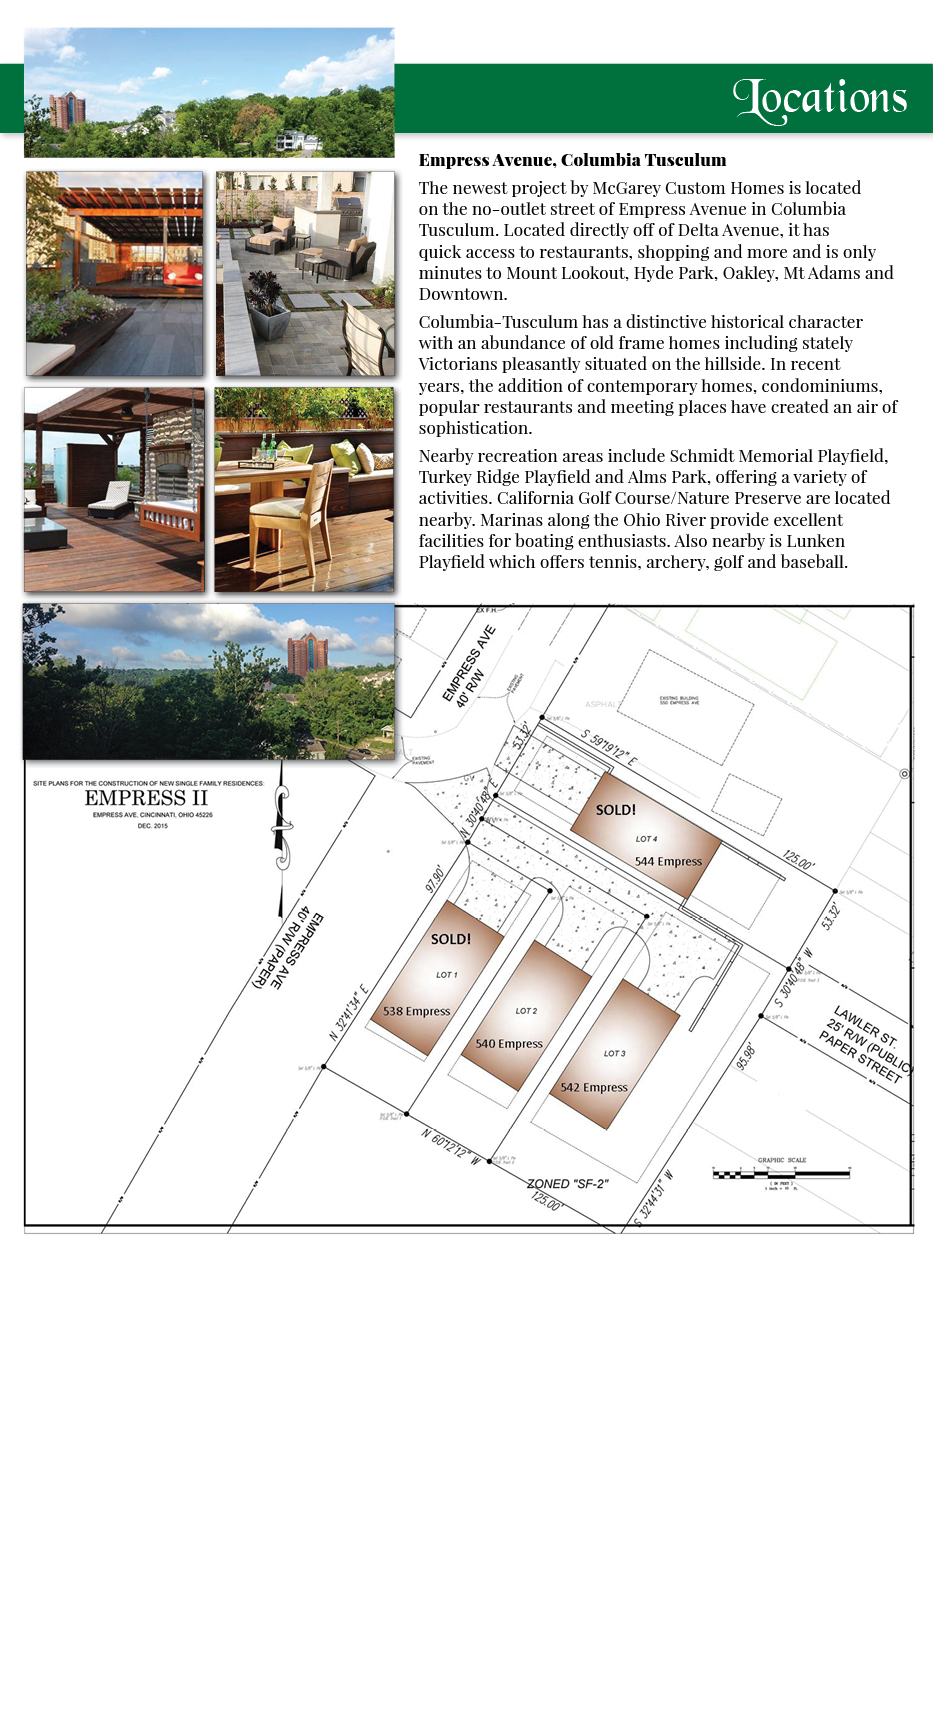 McGarey Custom Homes location renderings